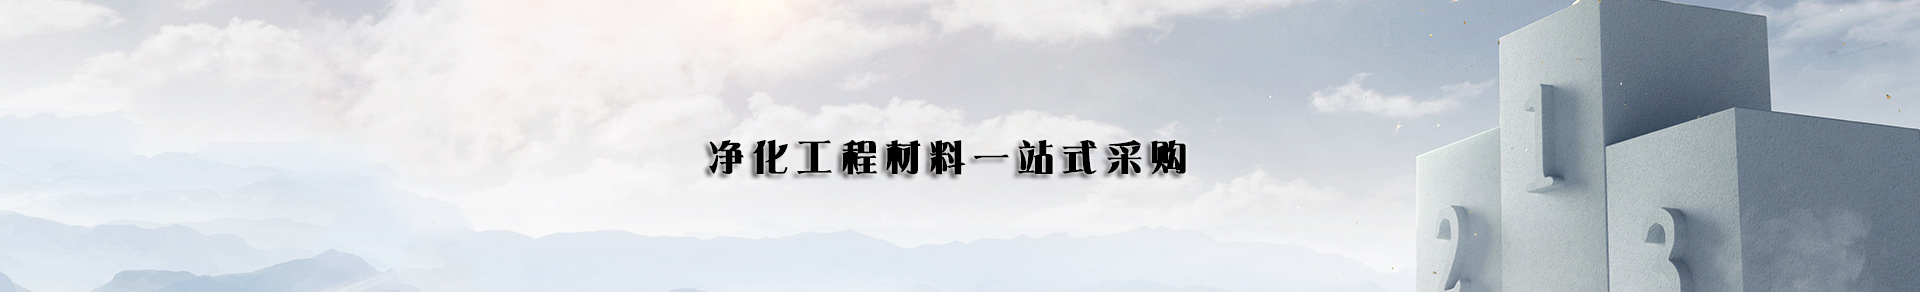 http://www.lujingjinghuaban.cn/data/upload/201910/20191031150931_755.jpg